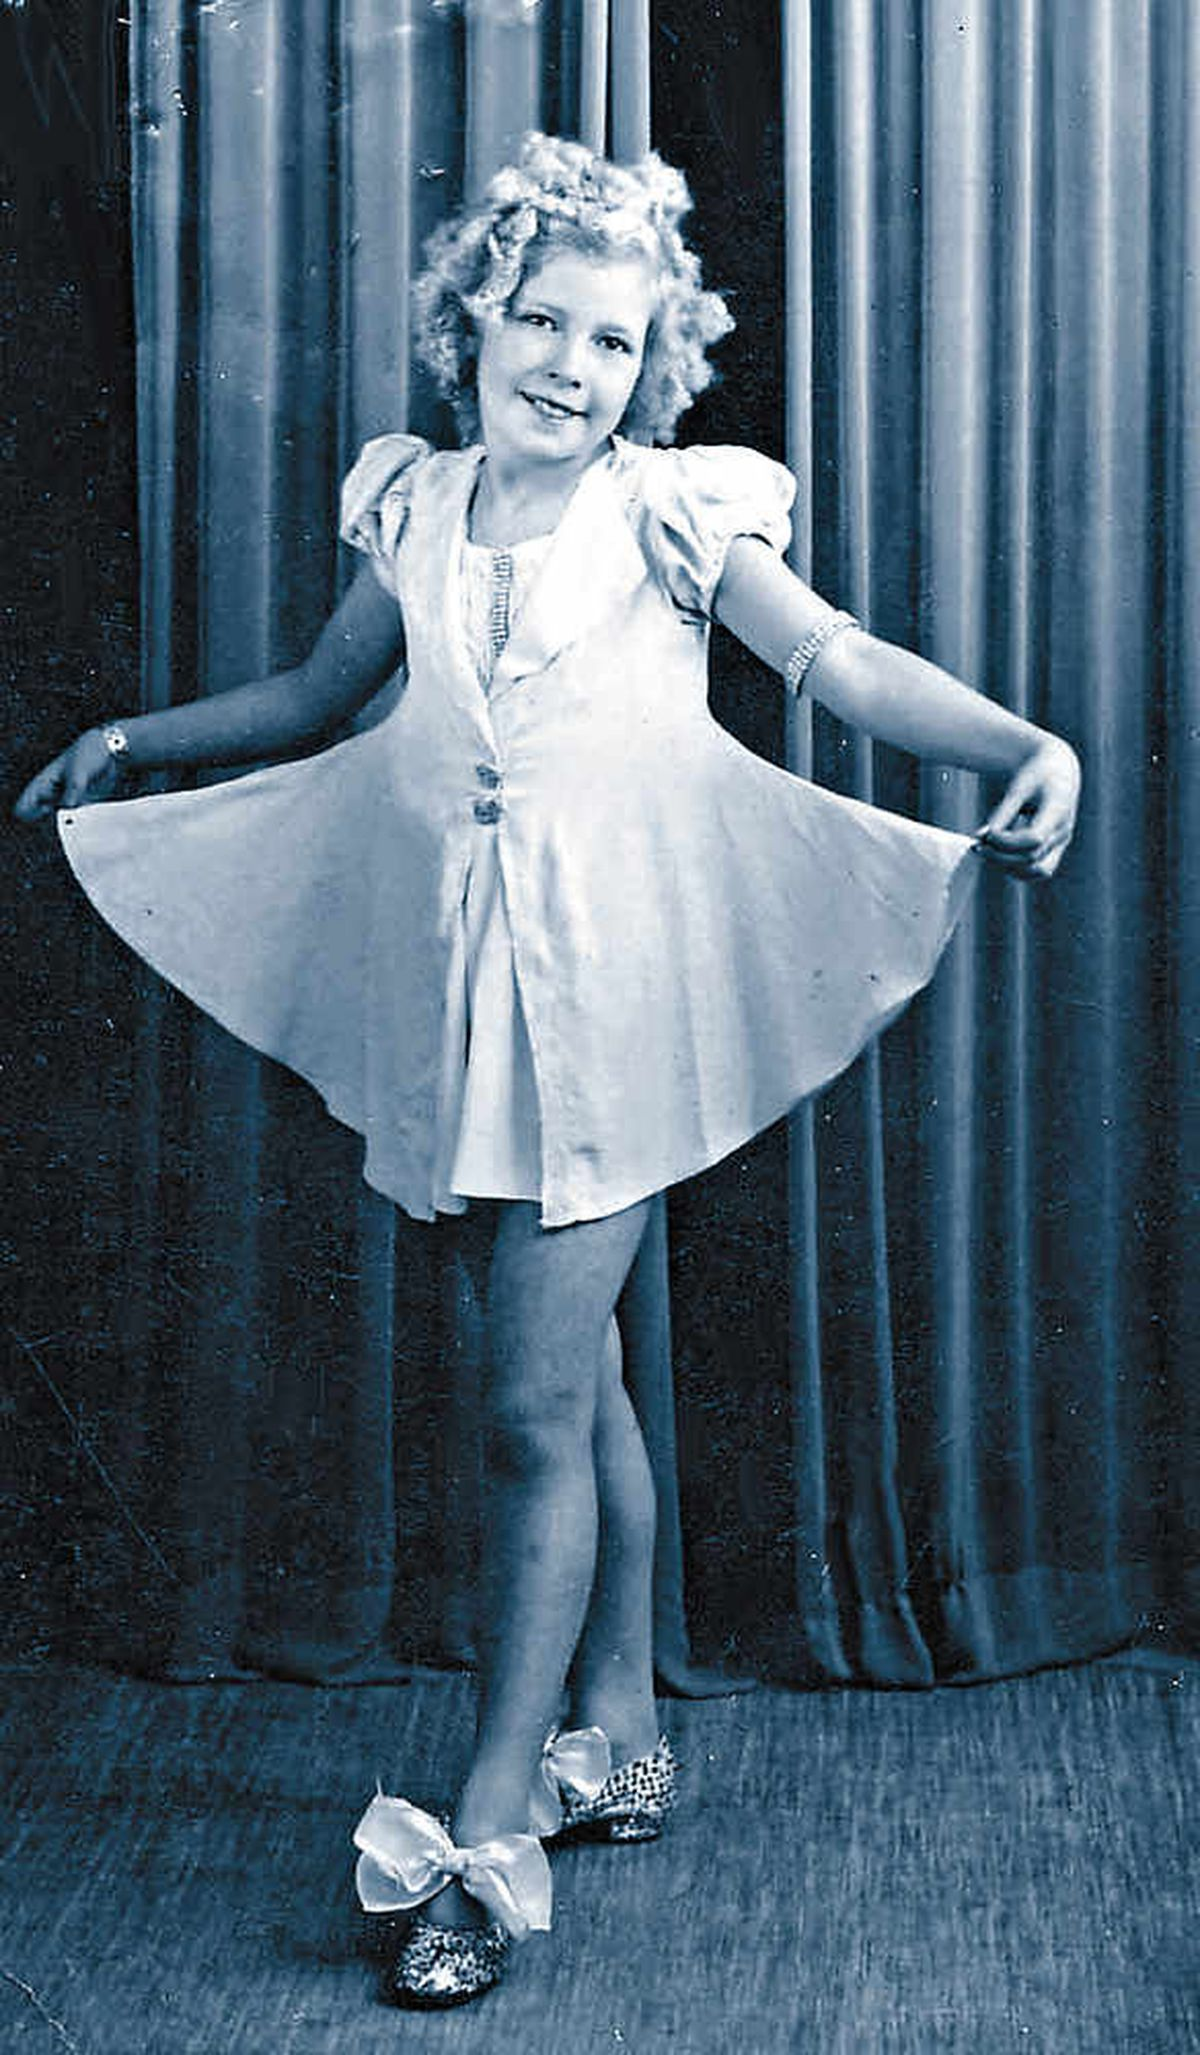 Sheila as Shirley Temple while performing her West Midlands-based dance show